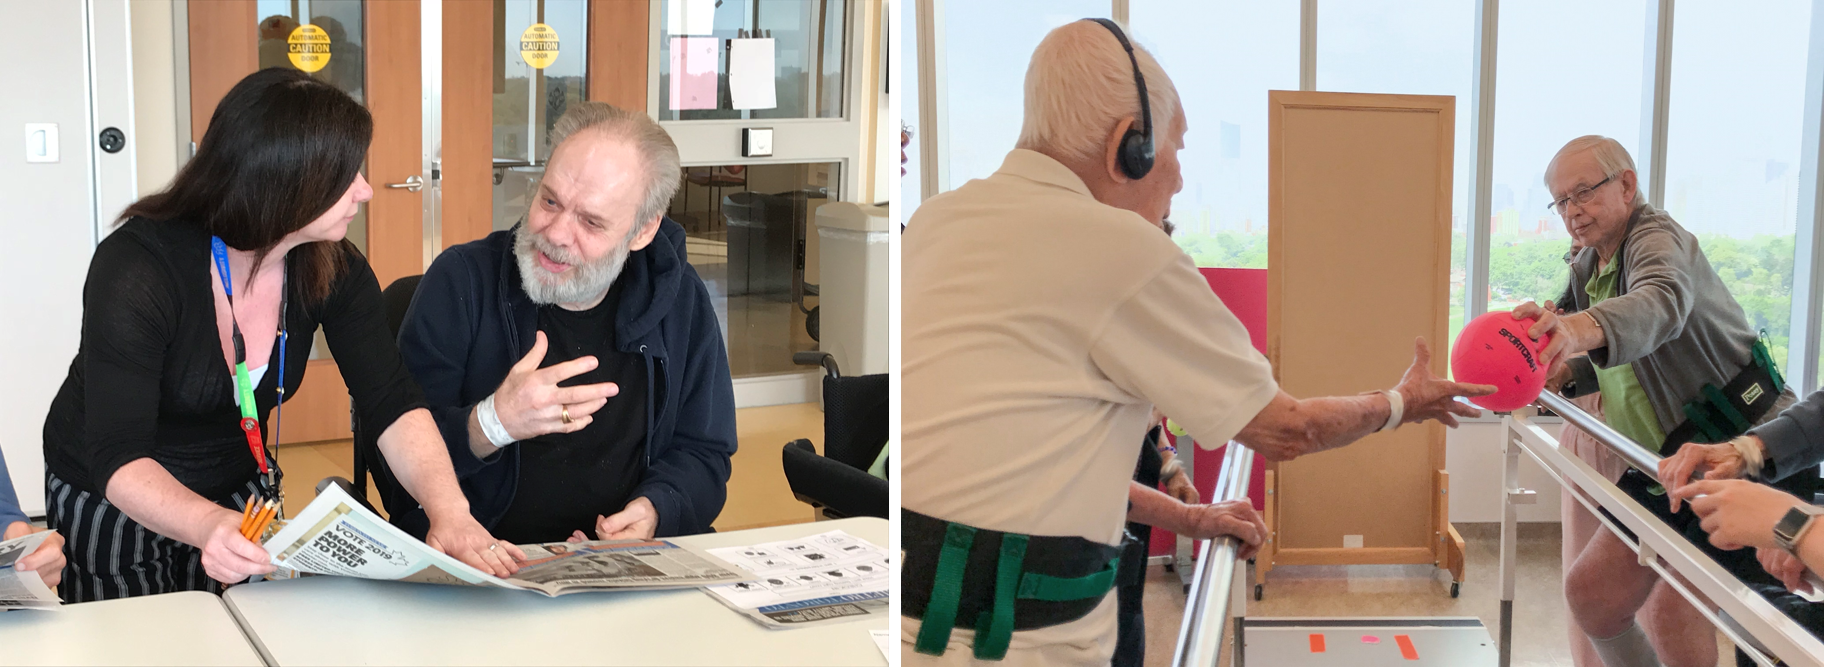 Two separate photos next to each other. One shows a patient and member of the clinical team at a table discussing a newspaper. The second photo shows an exercise class where two patients are standing holding onto railings and passing a ball to each other.